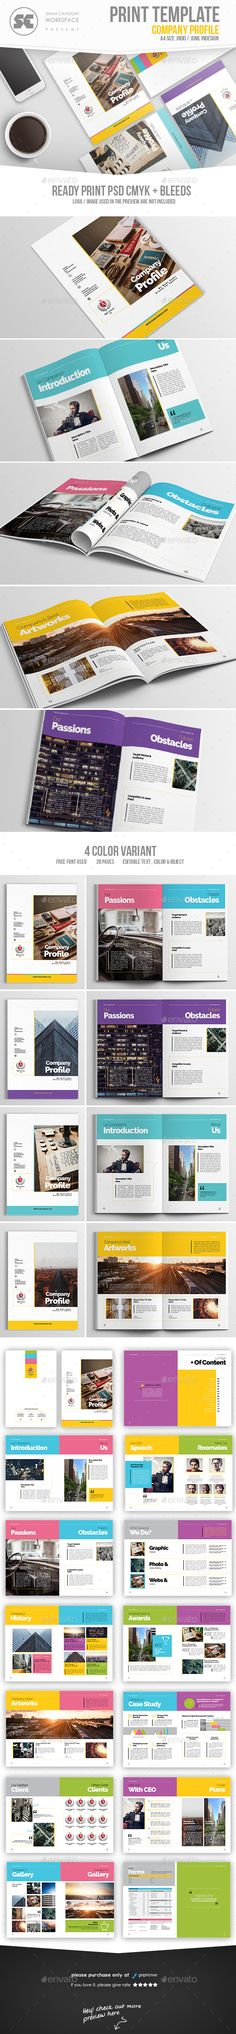 Company Profile Design Template V1 Company profile design - professional business profile template